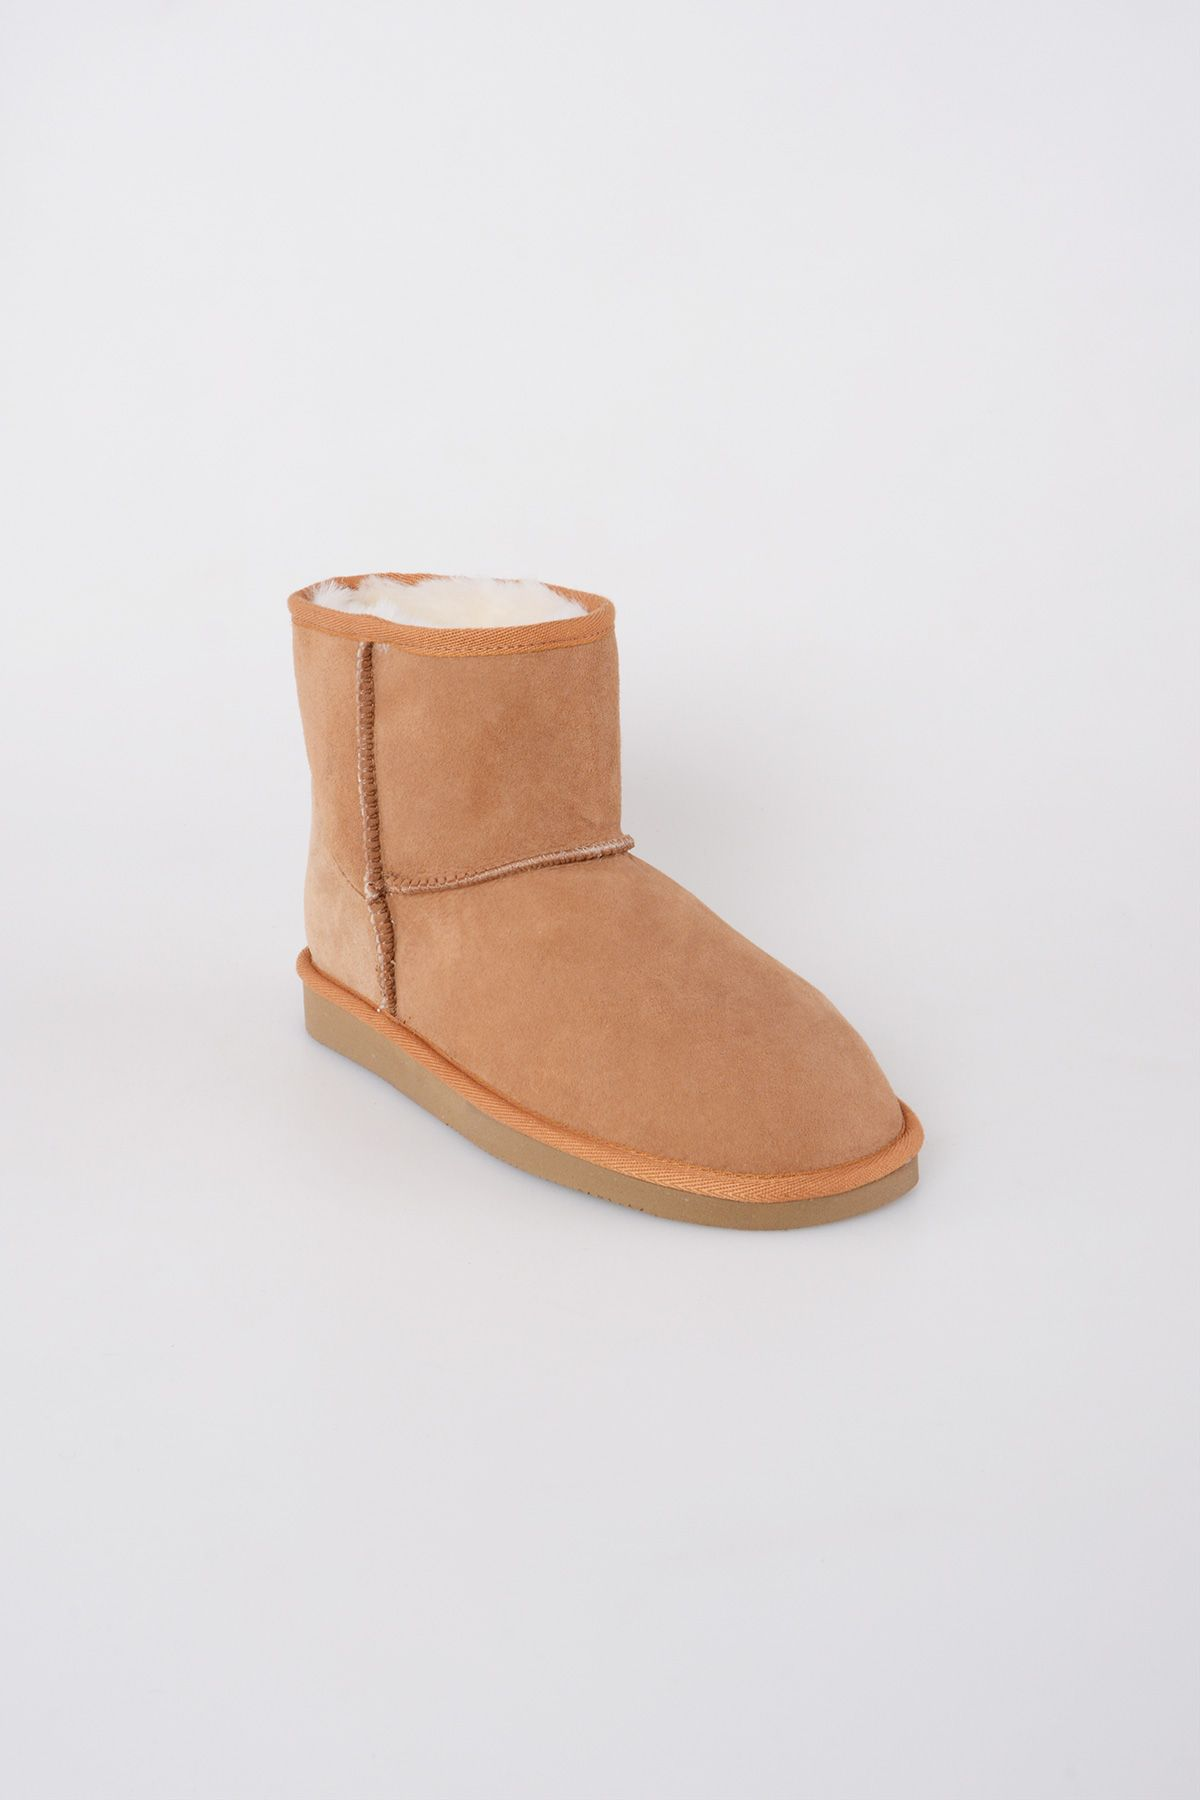 Pegia Genuine Suede & Shearling Short Women's Boots 980406 Ginger